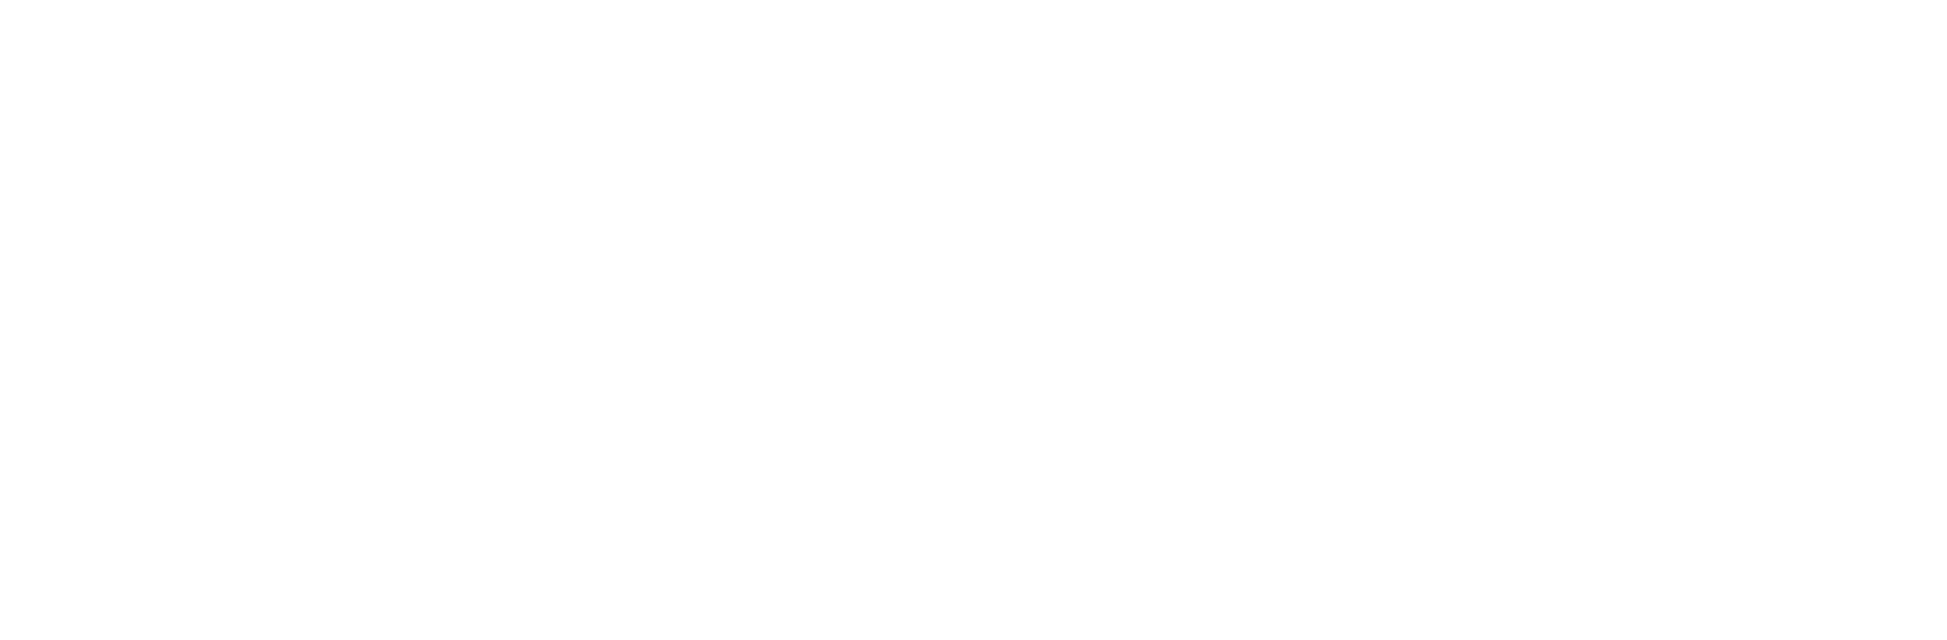 Google Cloud Project logo